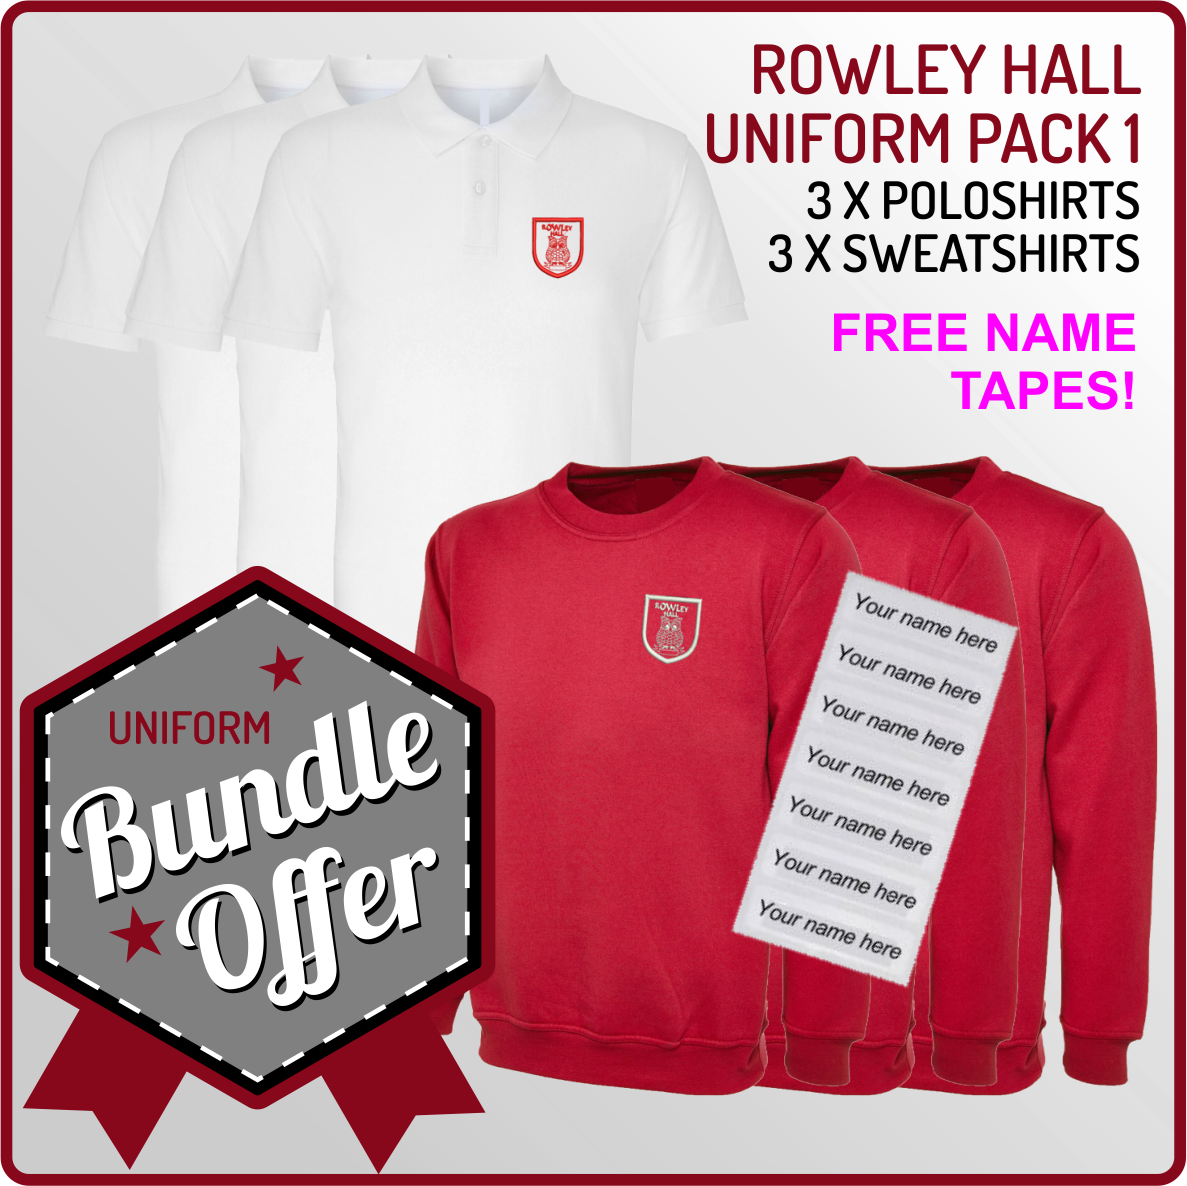 Bundle offer of 3 Crew Neck Sweatshirts & 3 Poloshirts